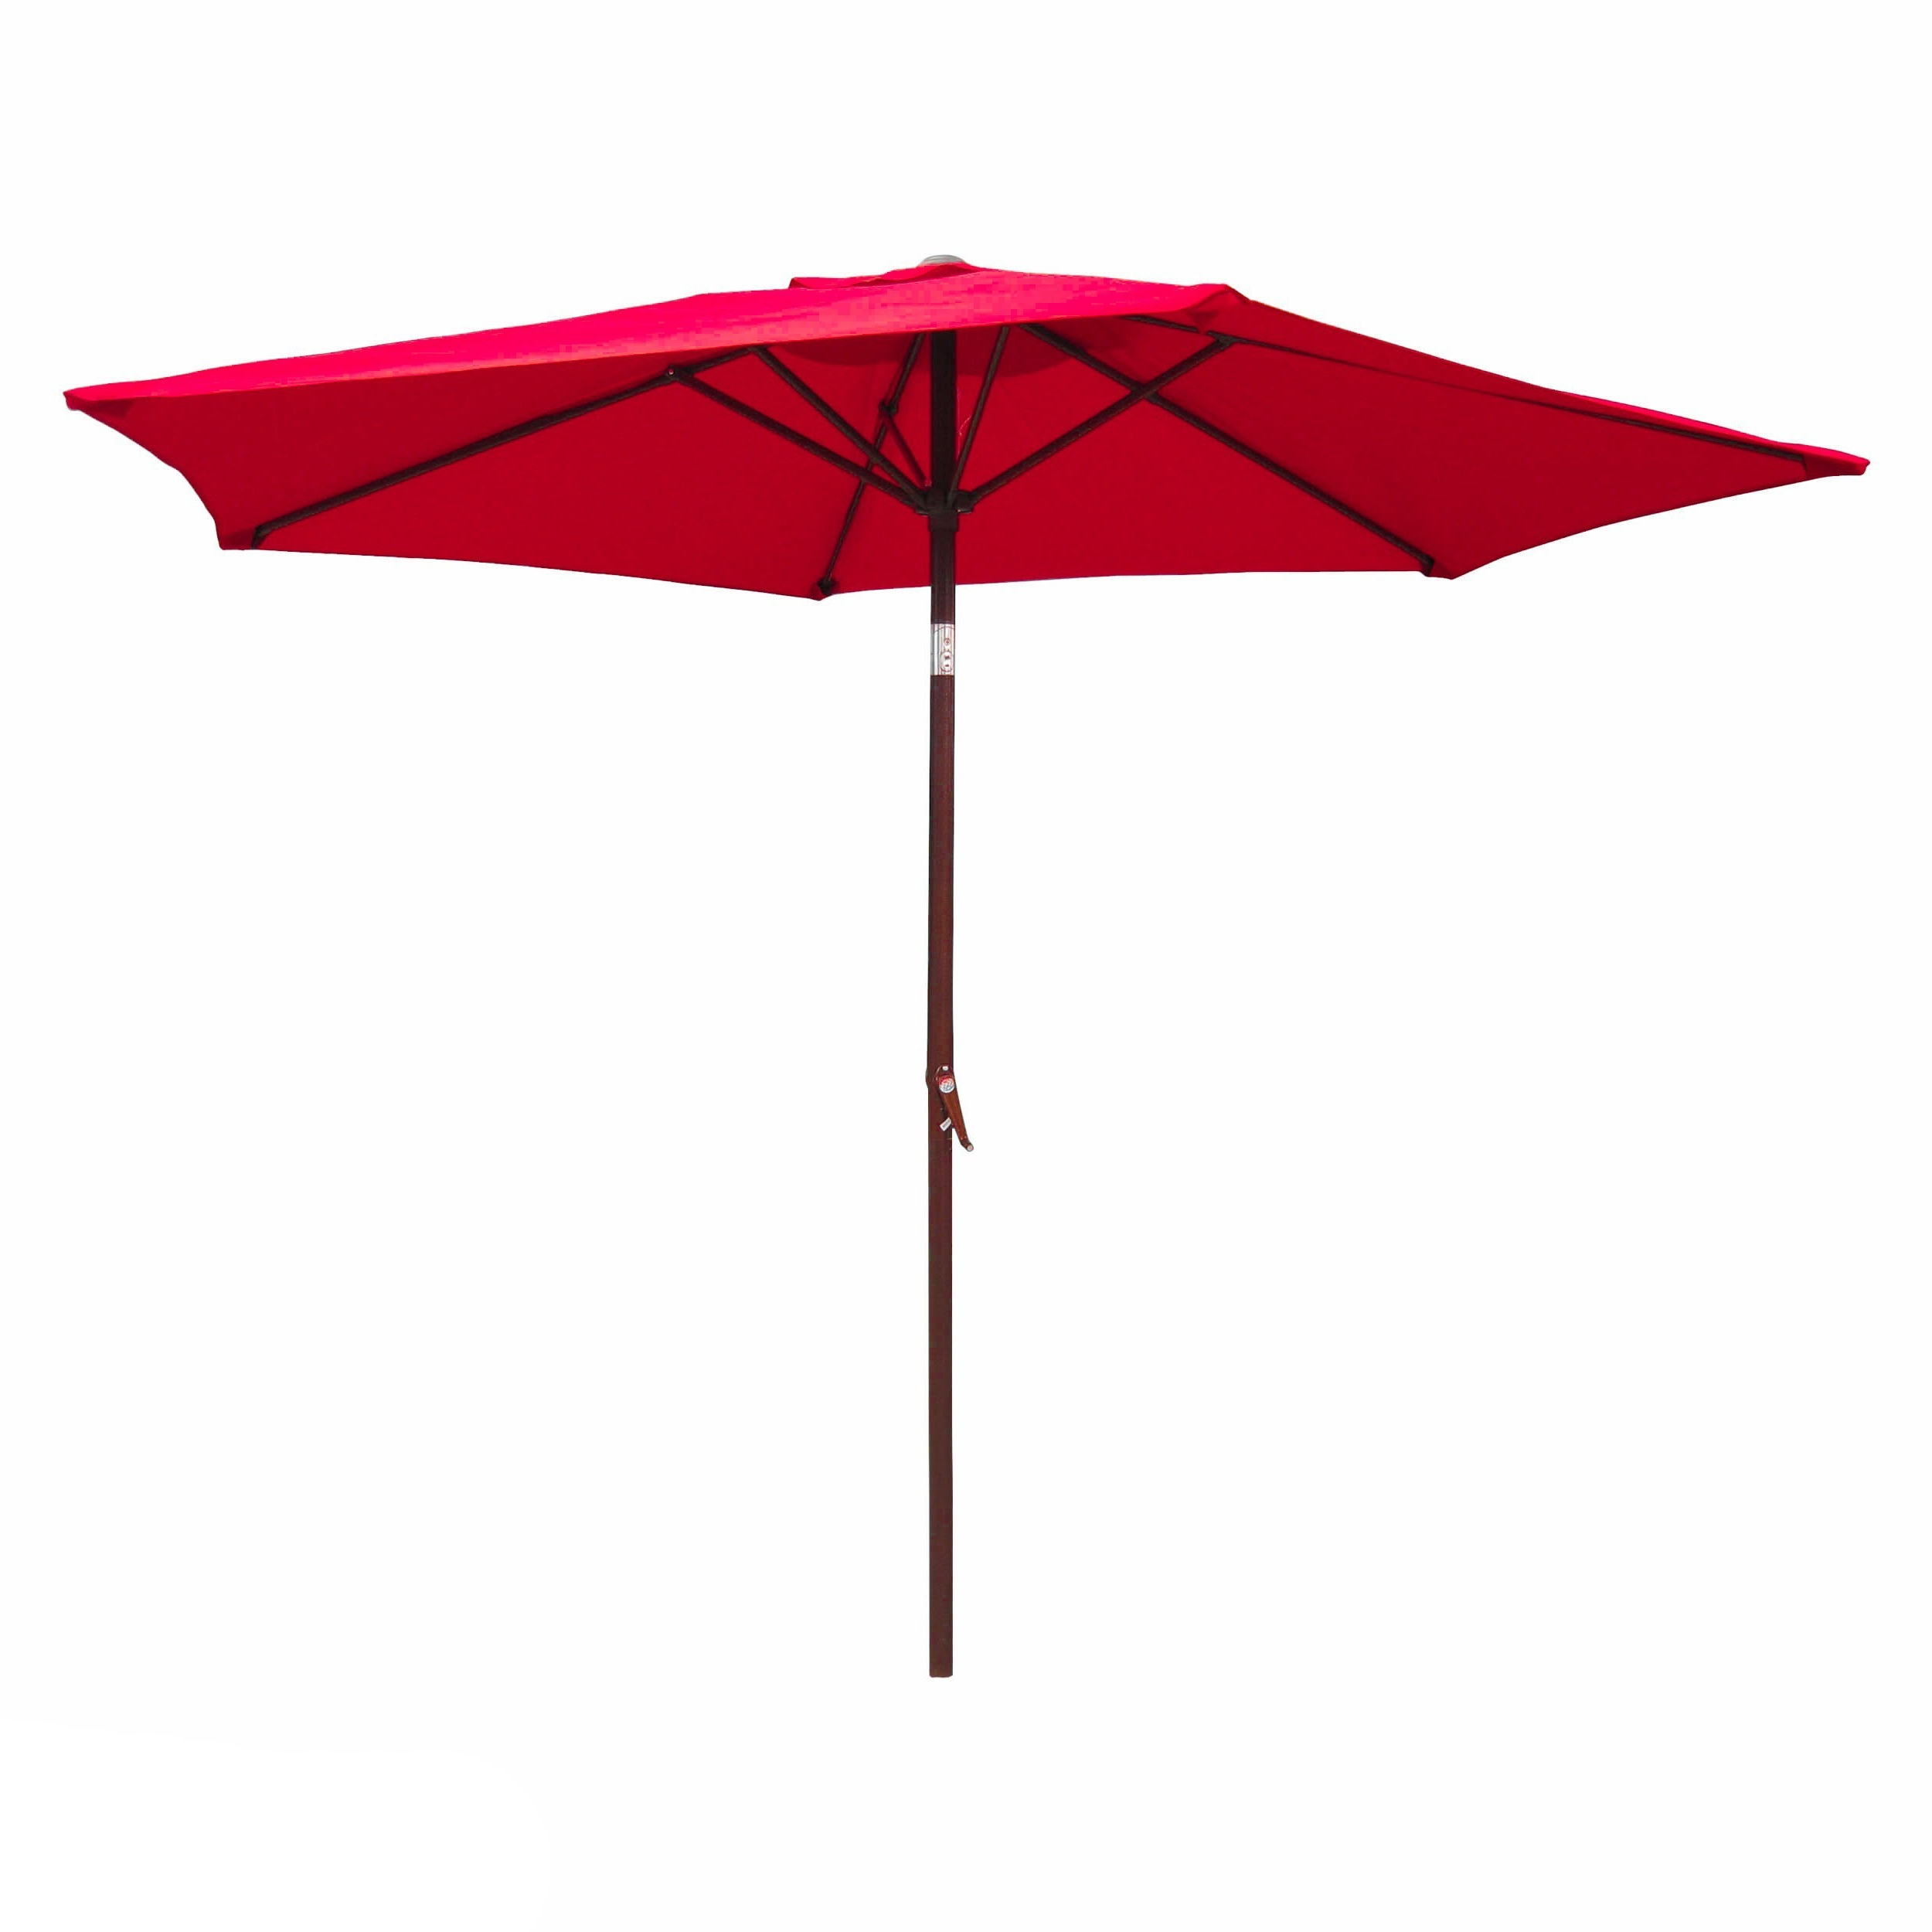 Patio Umbrella 8 Foot With Regard To Most Recently Released Frome Market Umbrellas (View 17 of 20)